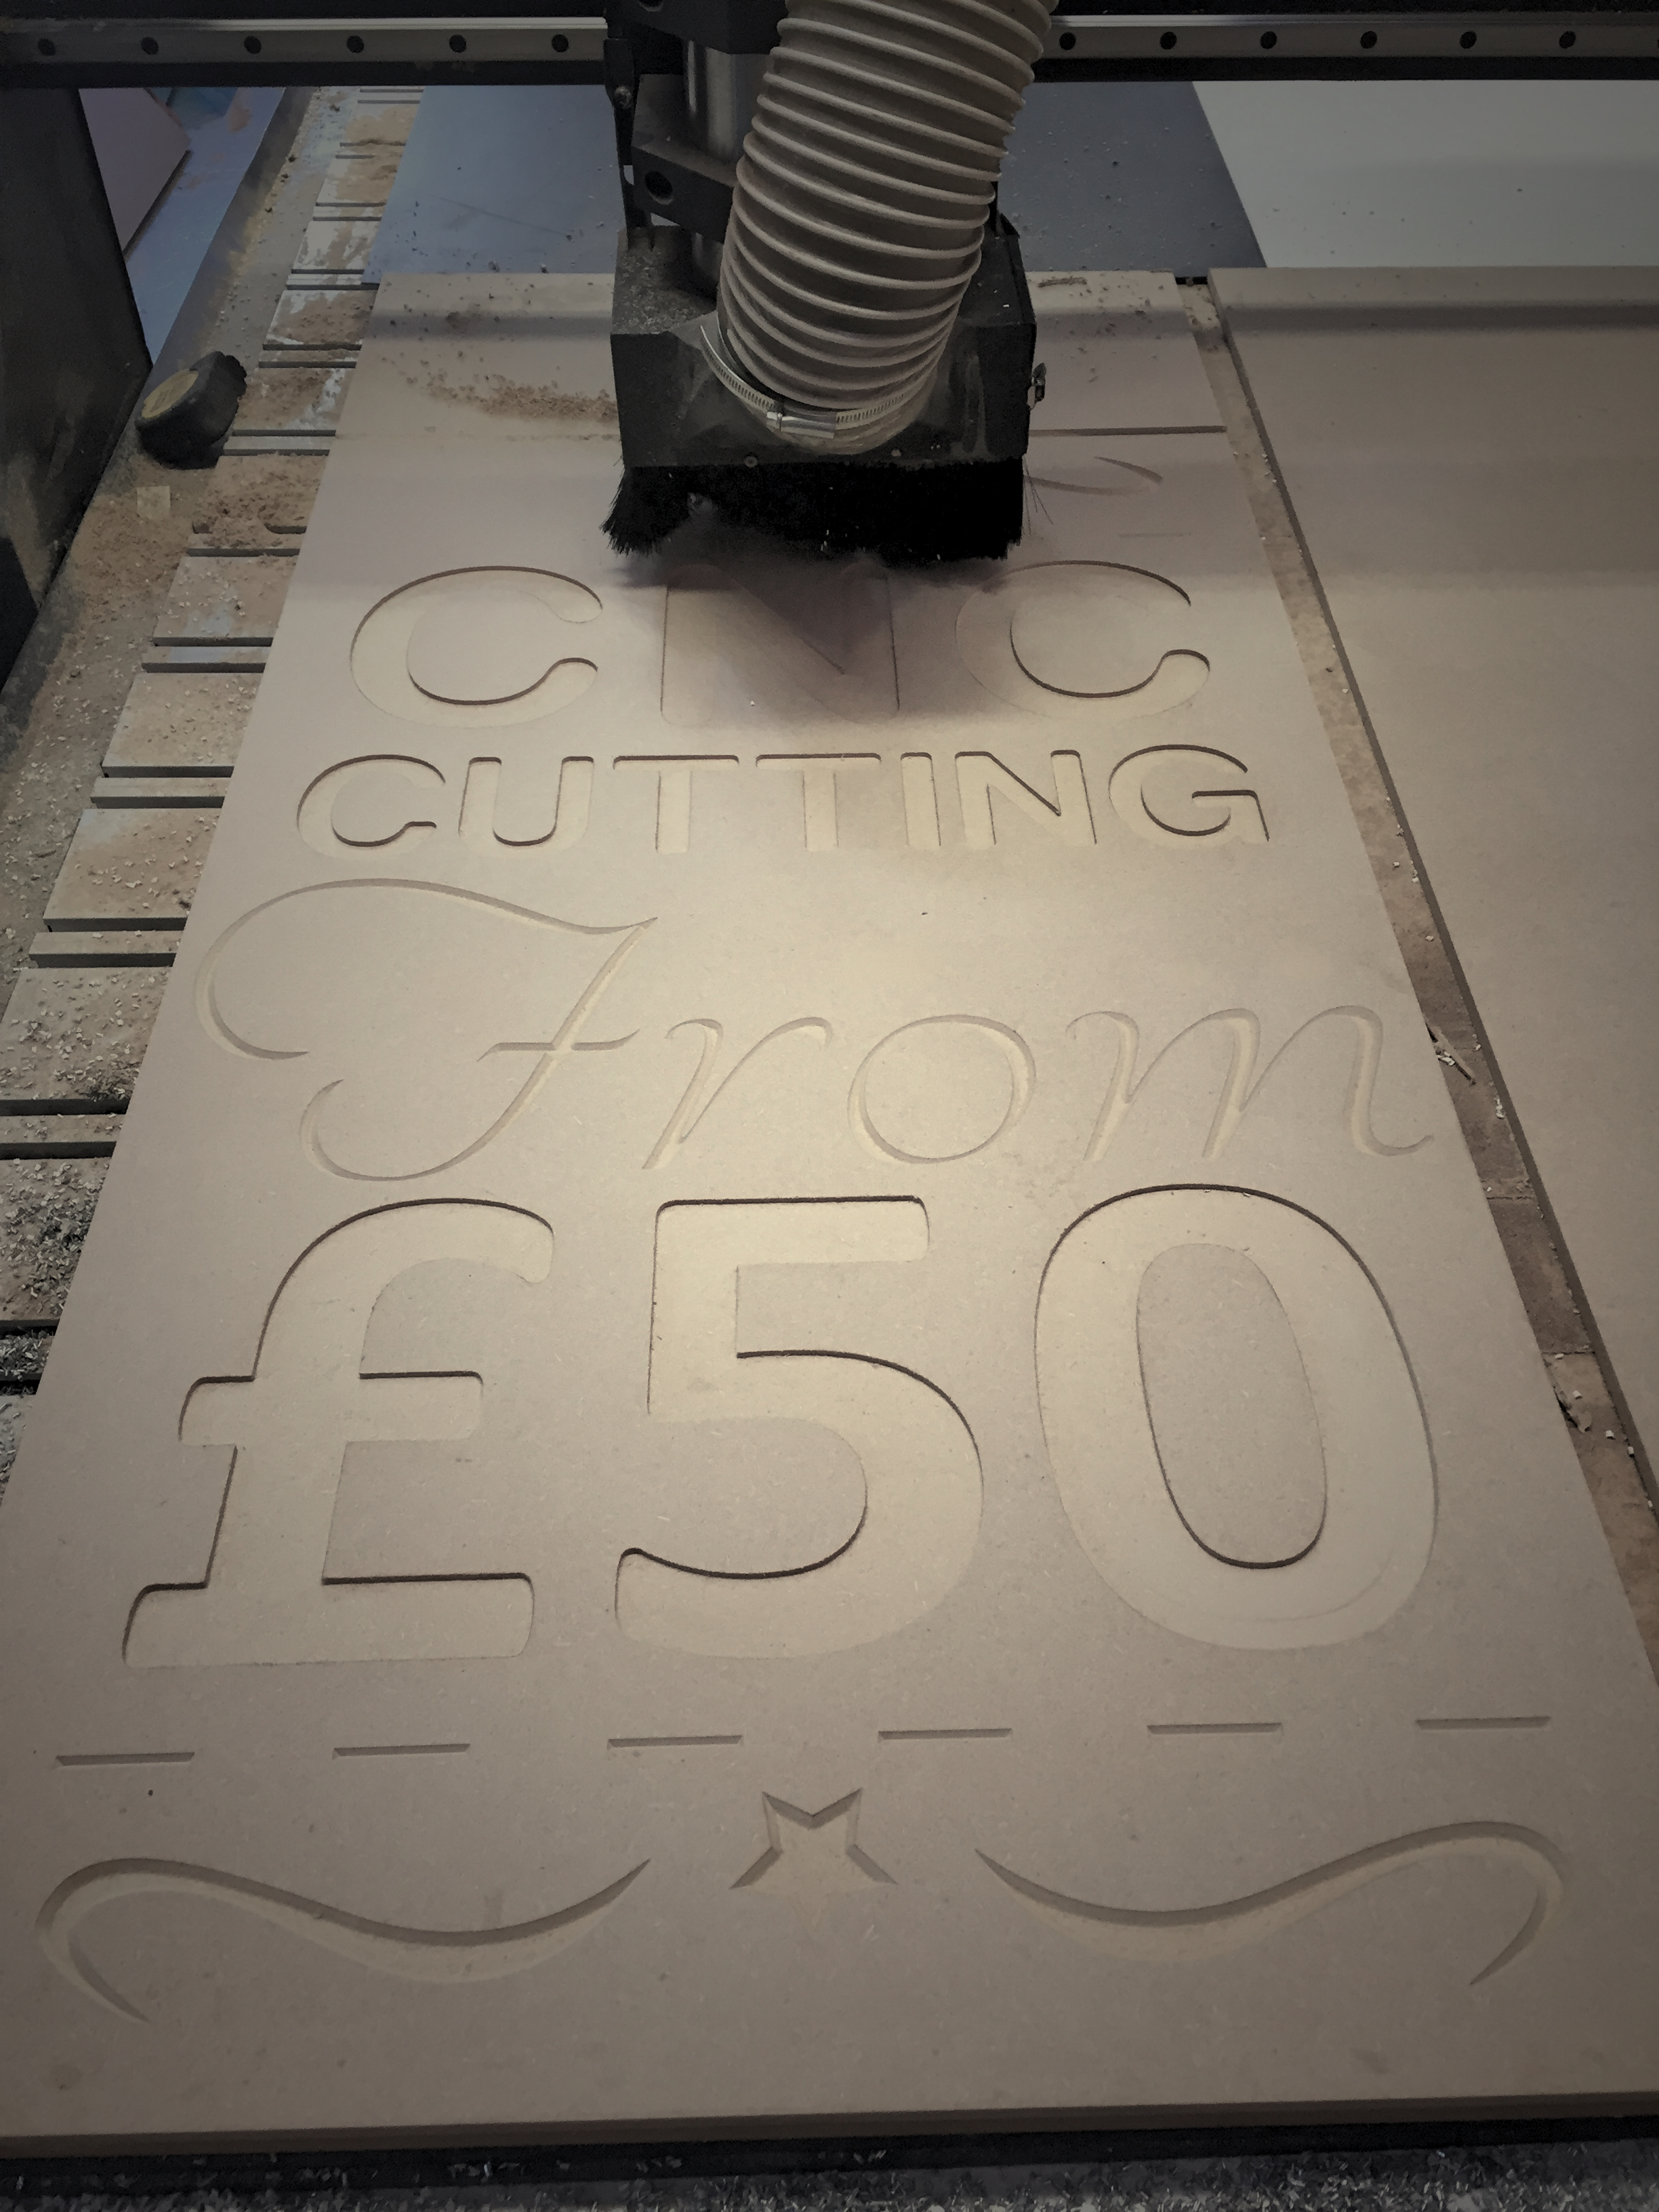 Photo of sign being cut by CNC router